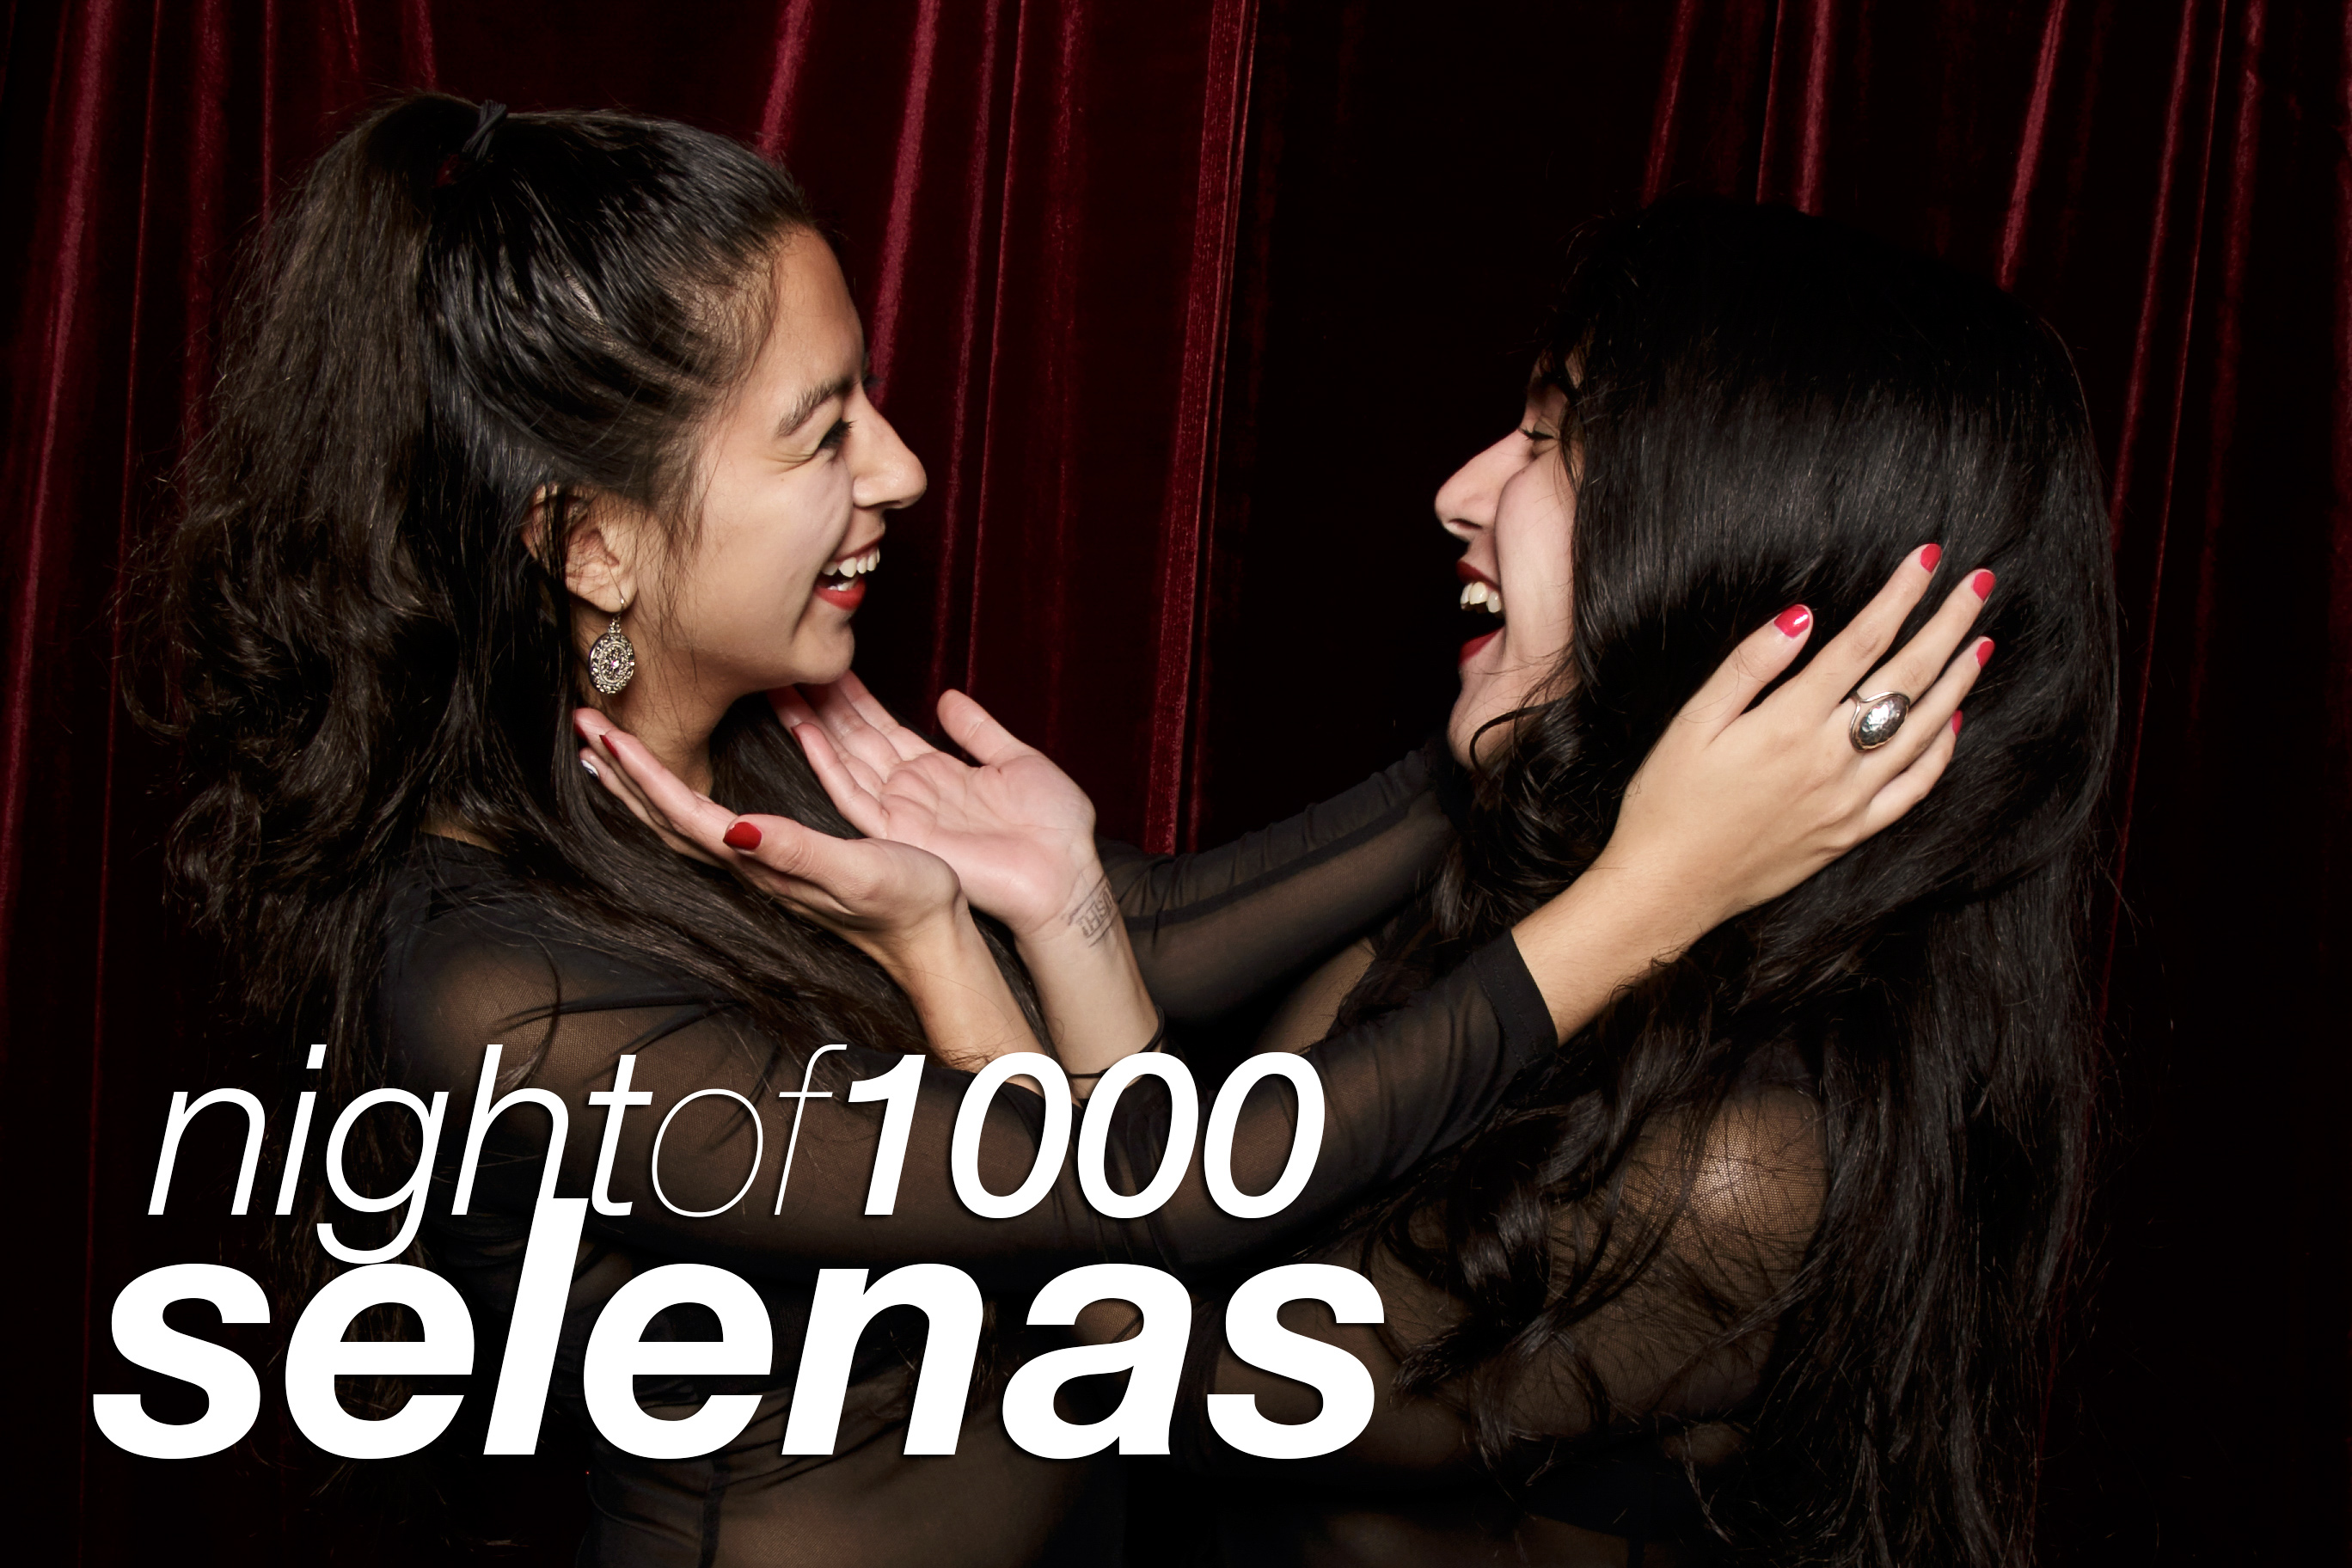 photo booth portraits from night of 1000 selenas, october 2016